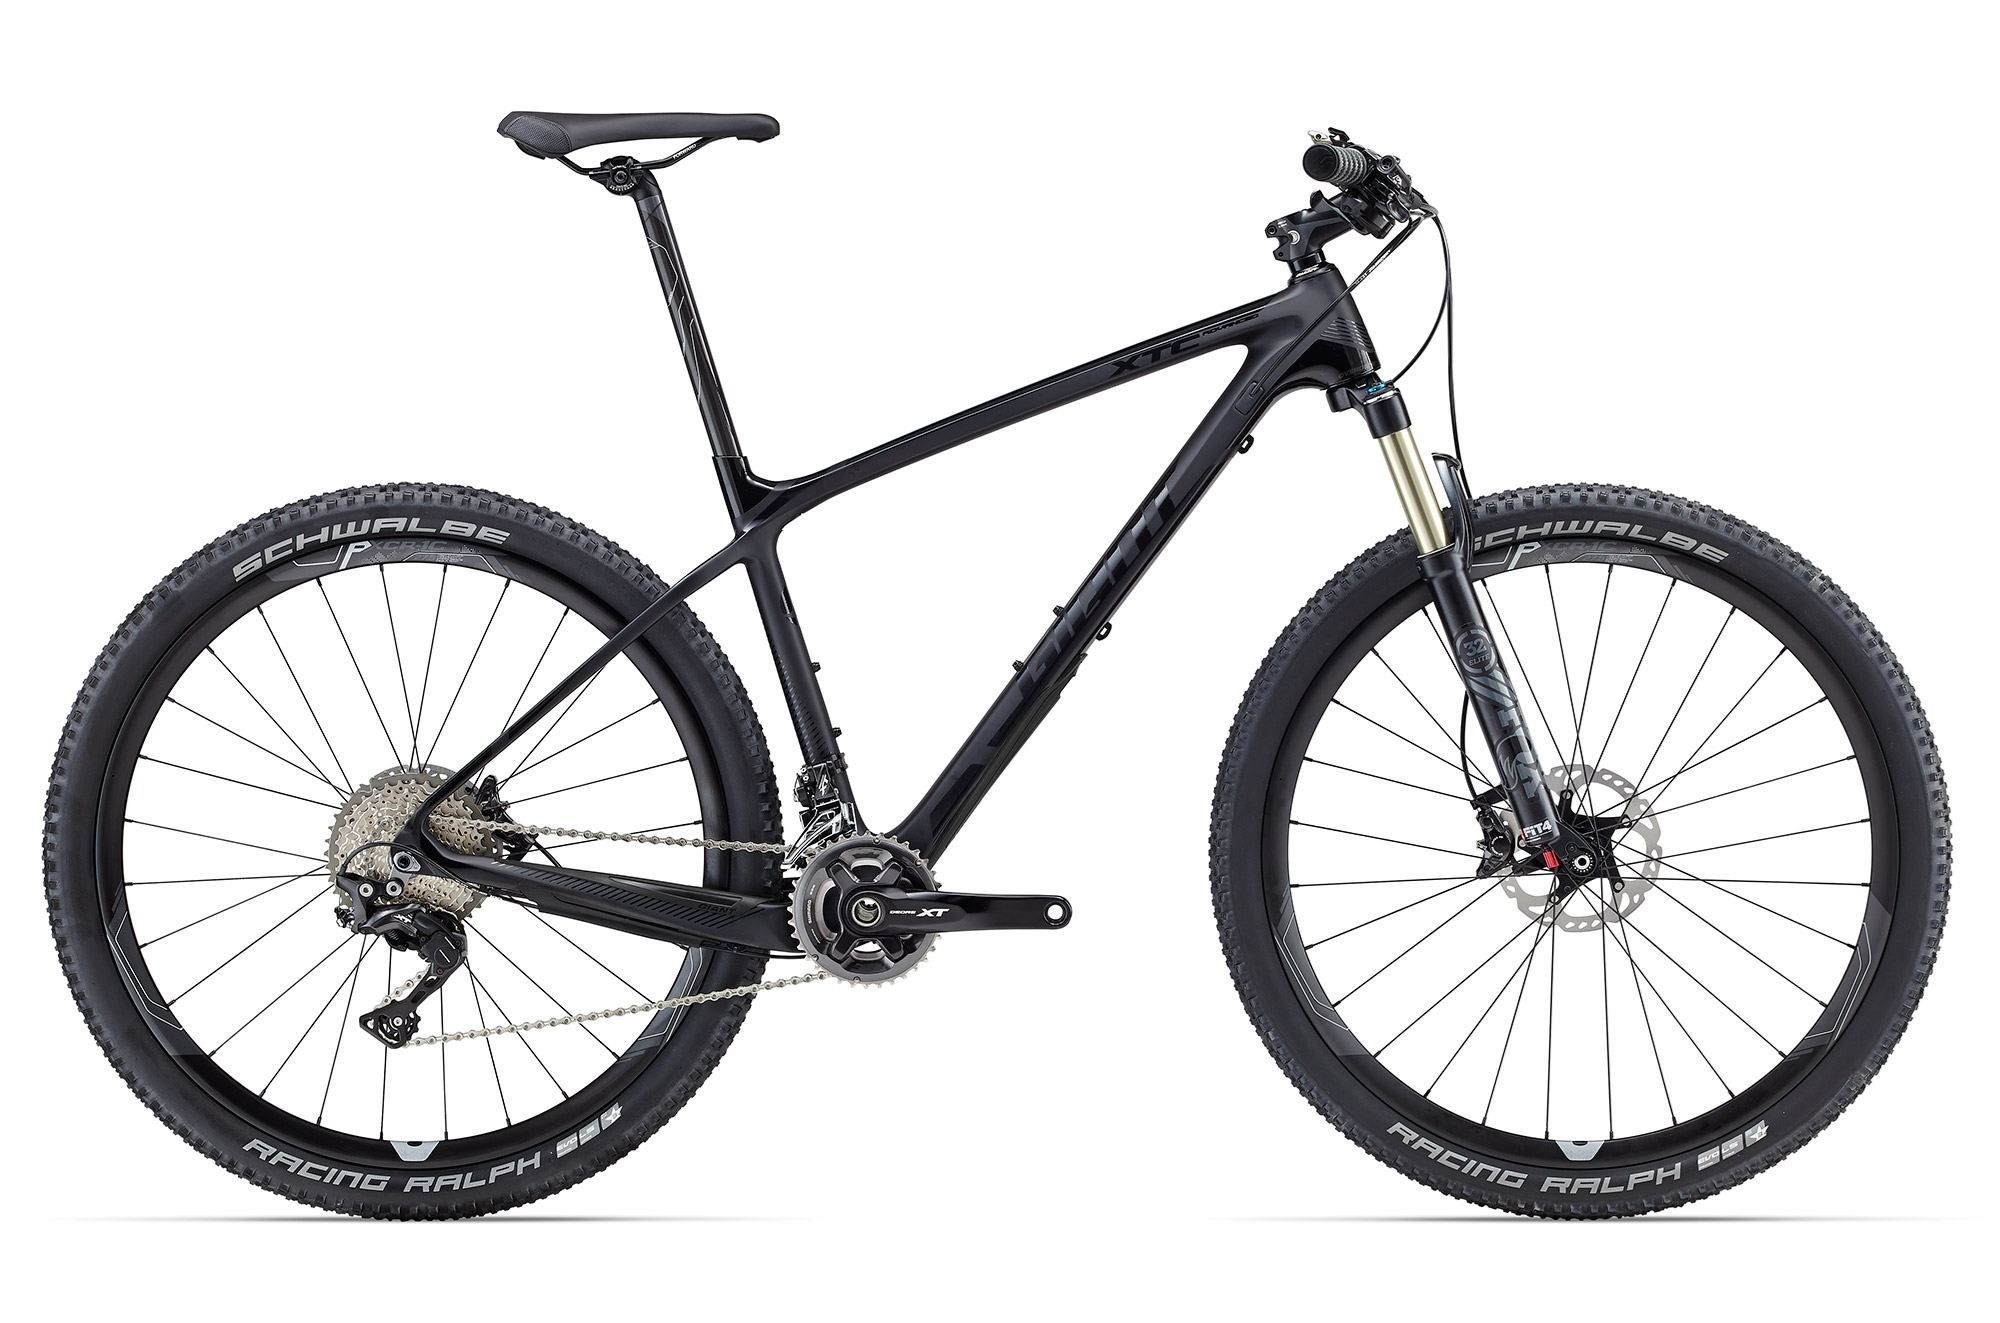 Велосипед Giant XtC Advanced 27.5 1 2016 велосипед giant xtc composite 1 2013